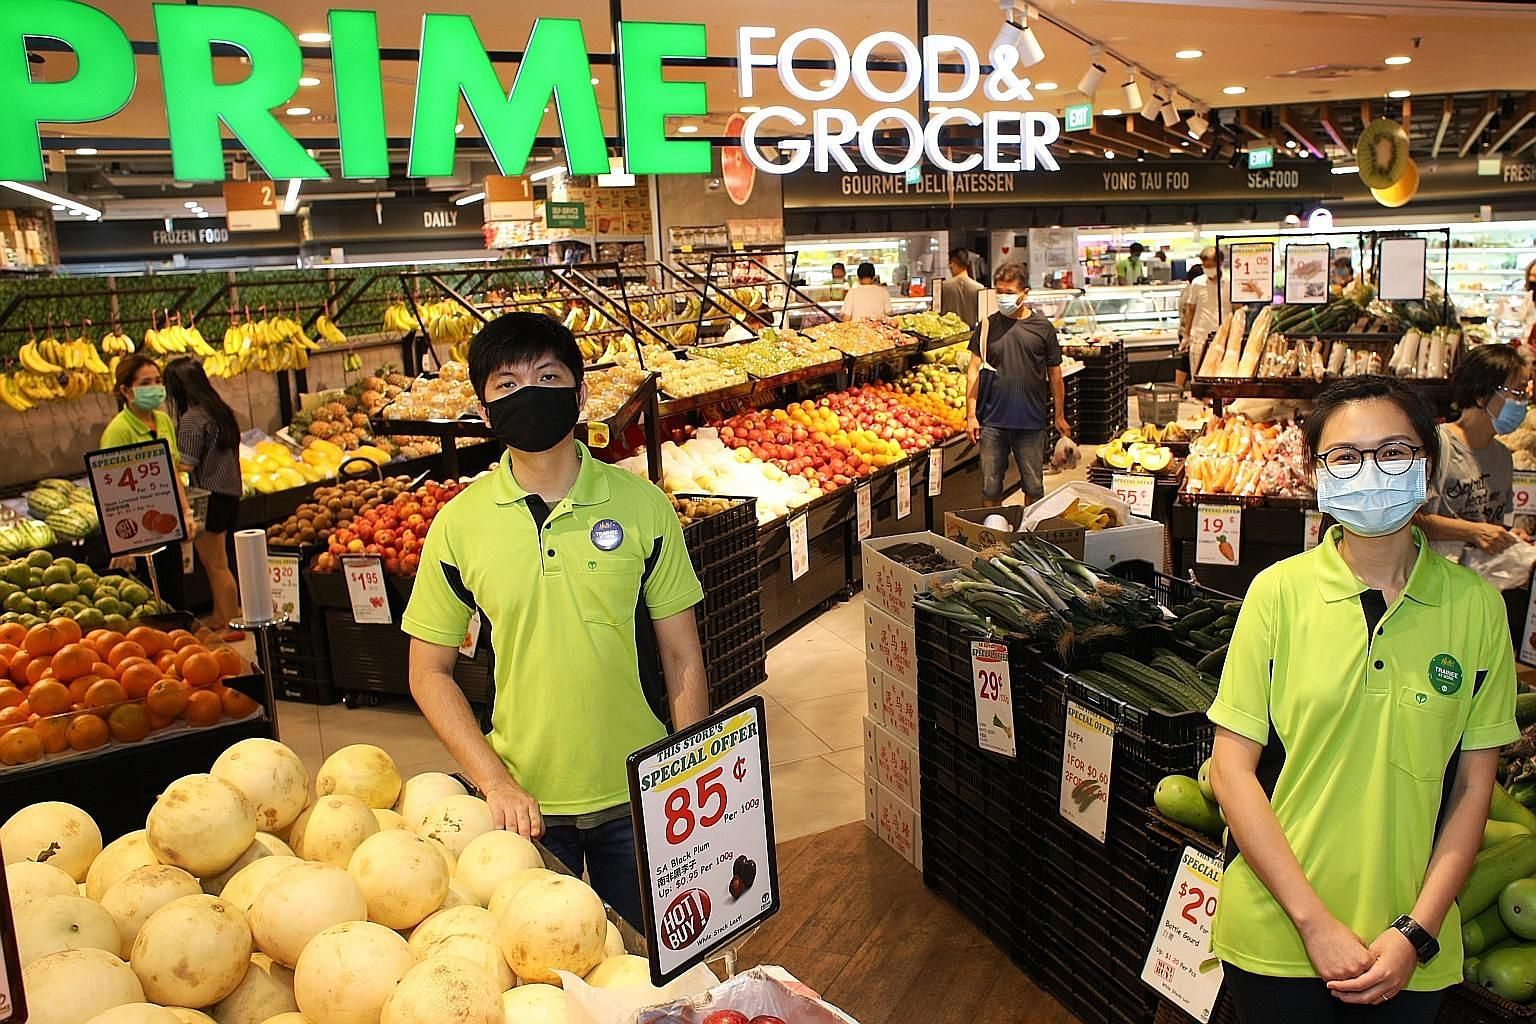 (From left) Retail assistants Niki Lim and Wendy Leong are working at Prime Food & Grocer supermarket in Century Square mall. Ms Leong, an air stewardess who was placed on furlough, applied through the virtual career fairs platform under Workforce Si